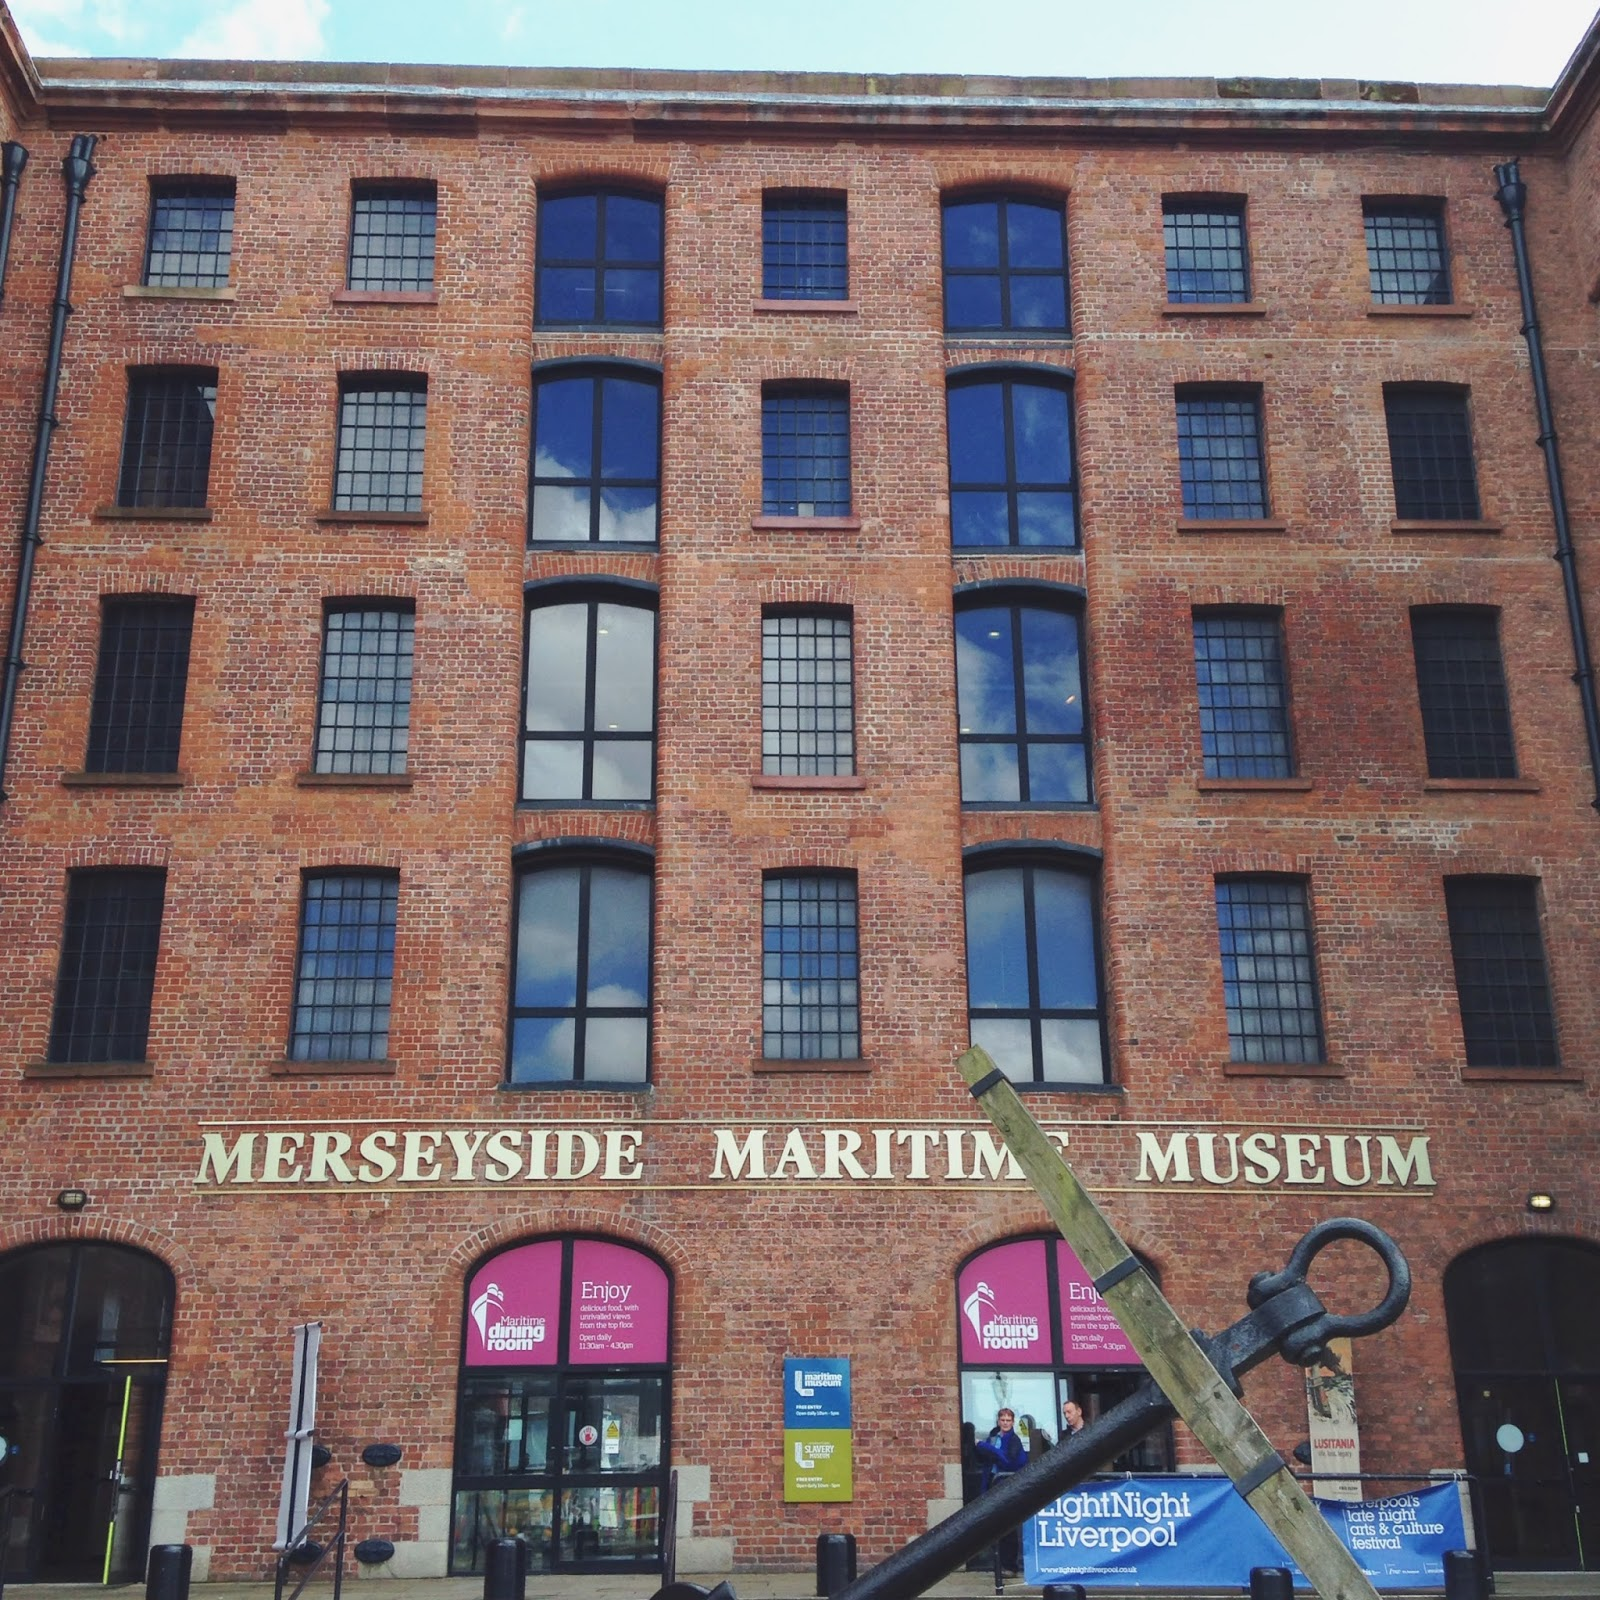 Mersyside maritime museum